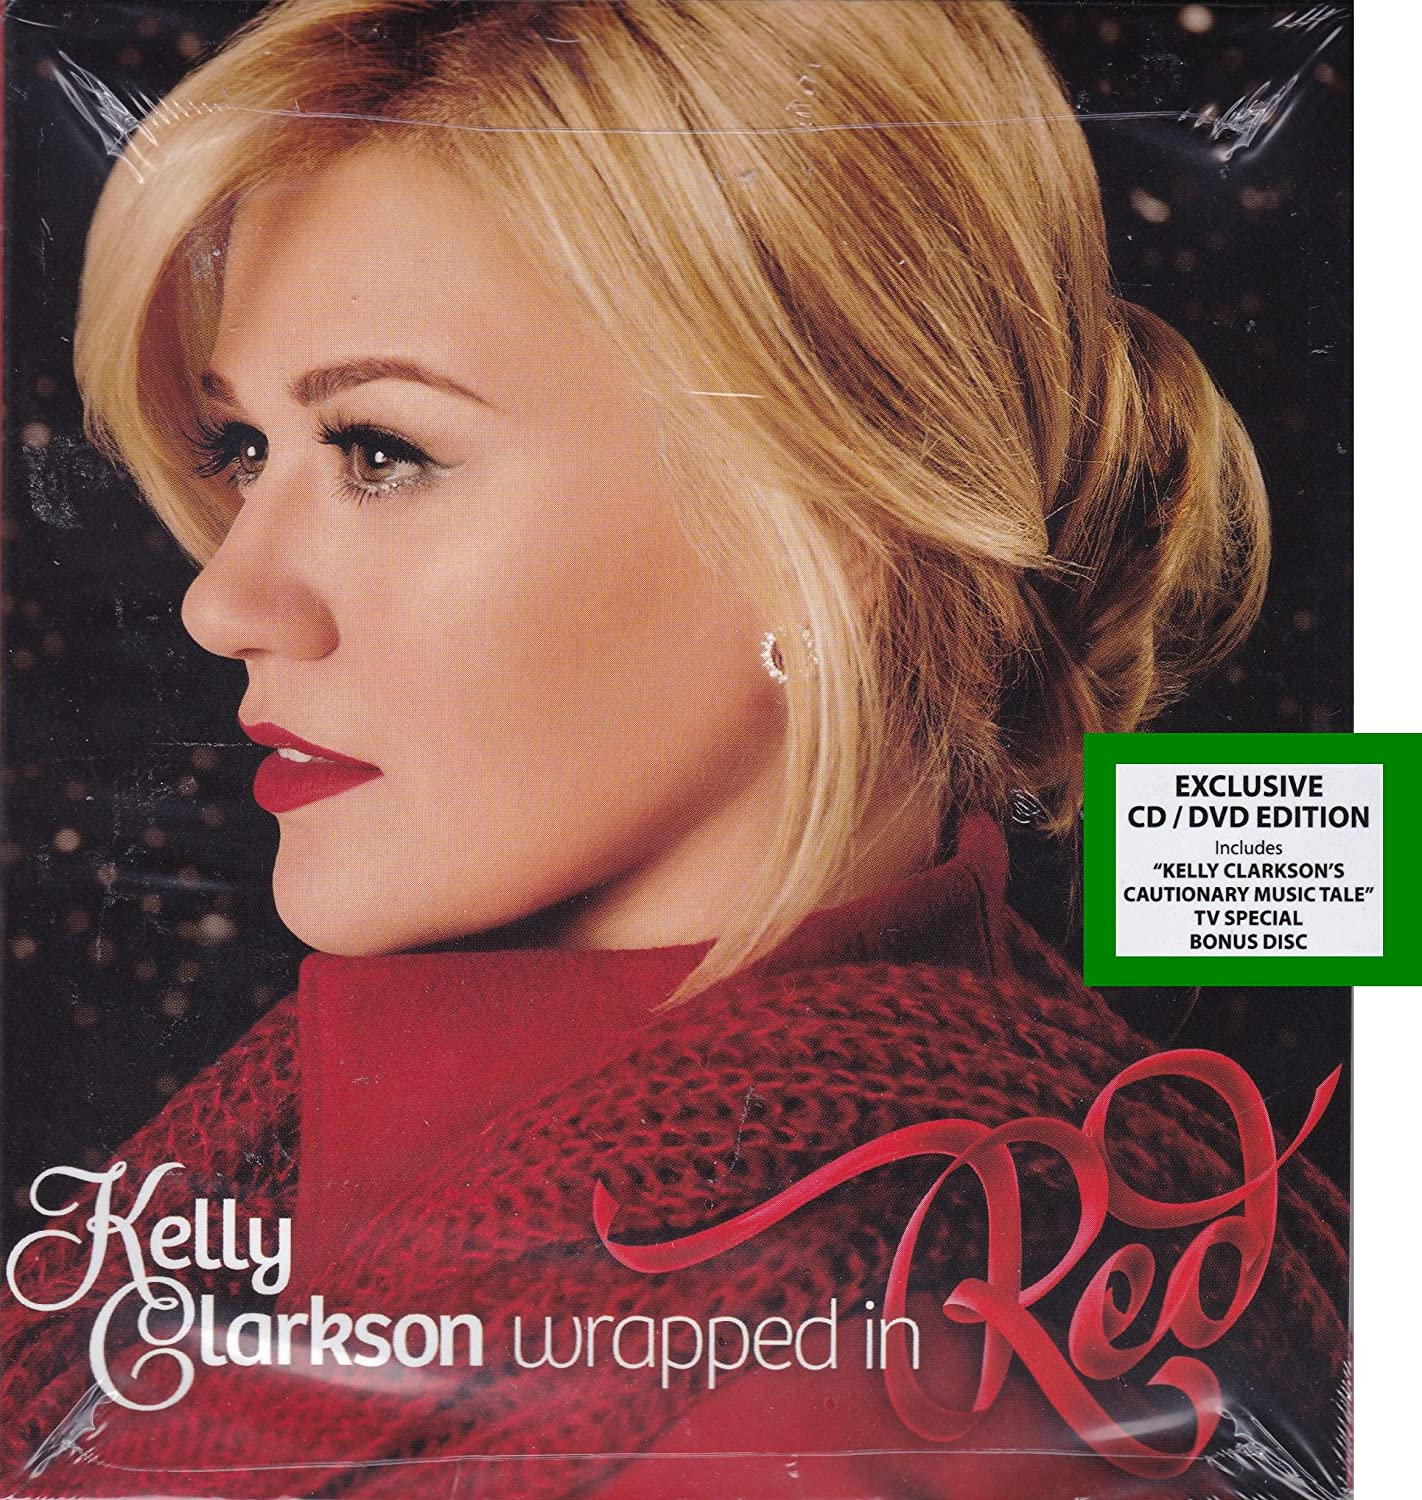 KELLY CLARKSON - Wrapped In Red CD+DVD - Amazon.com Music